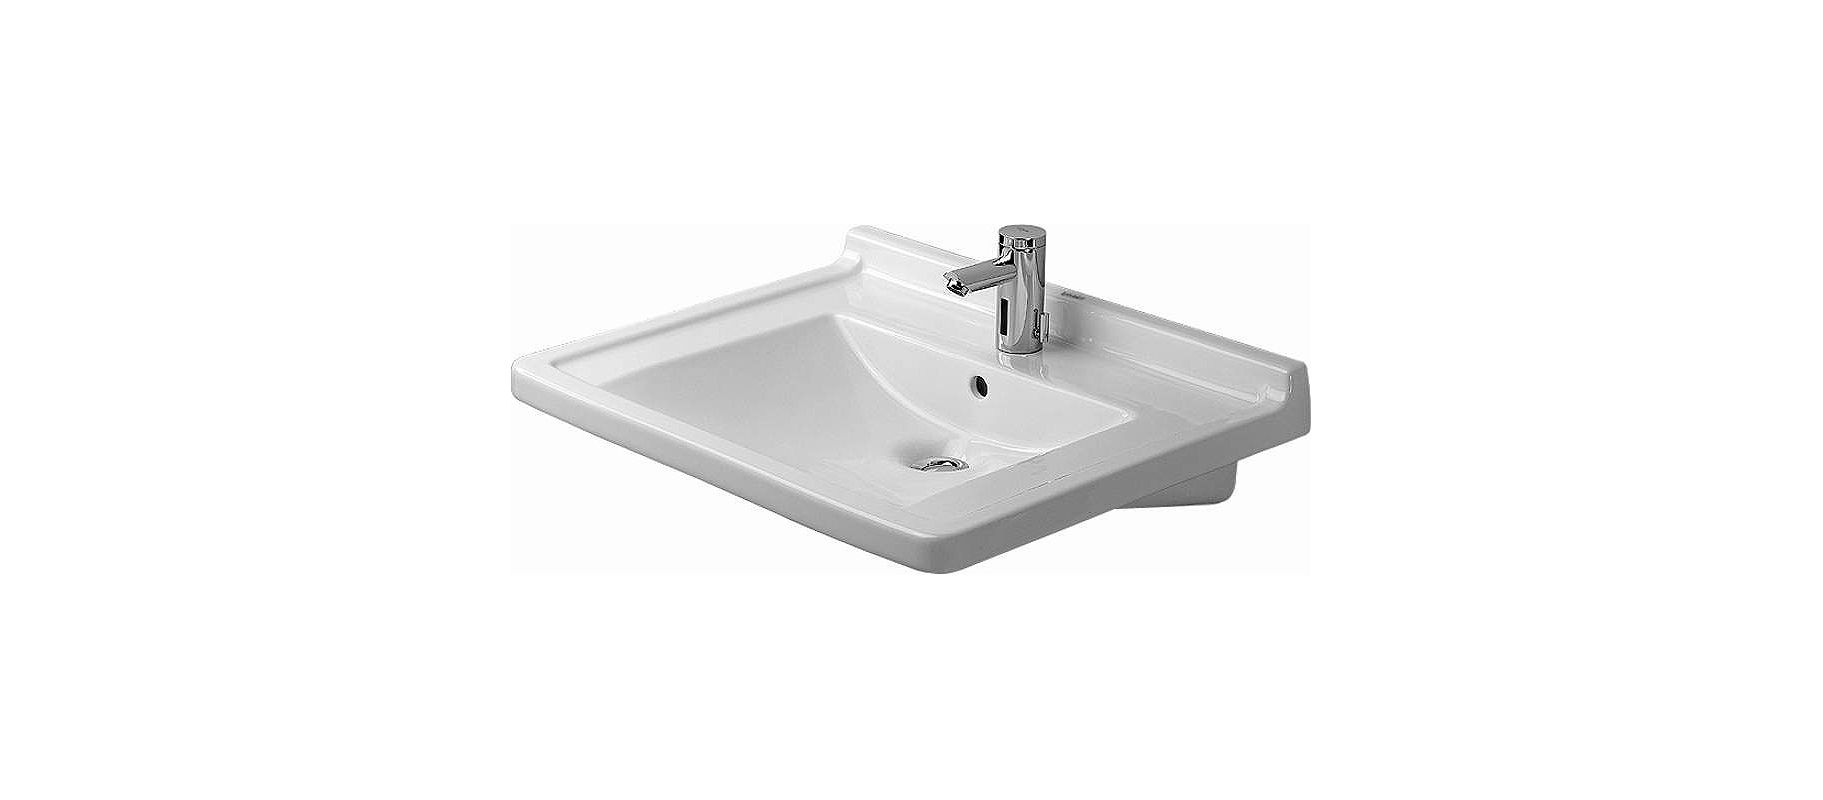 Duravit Bathroom Sink Faucetcom 0309700000 In White By Duravit